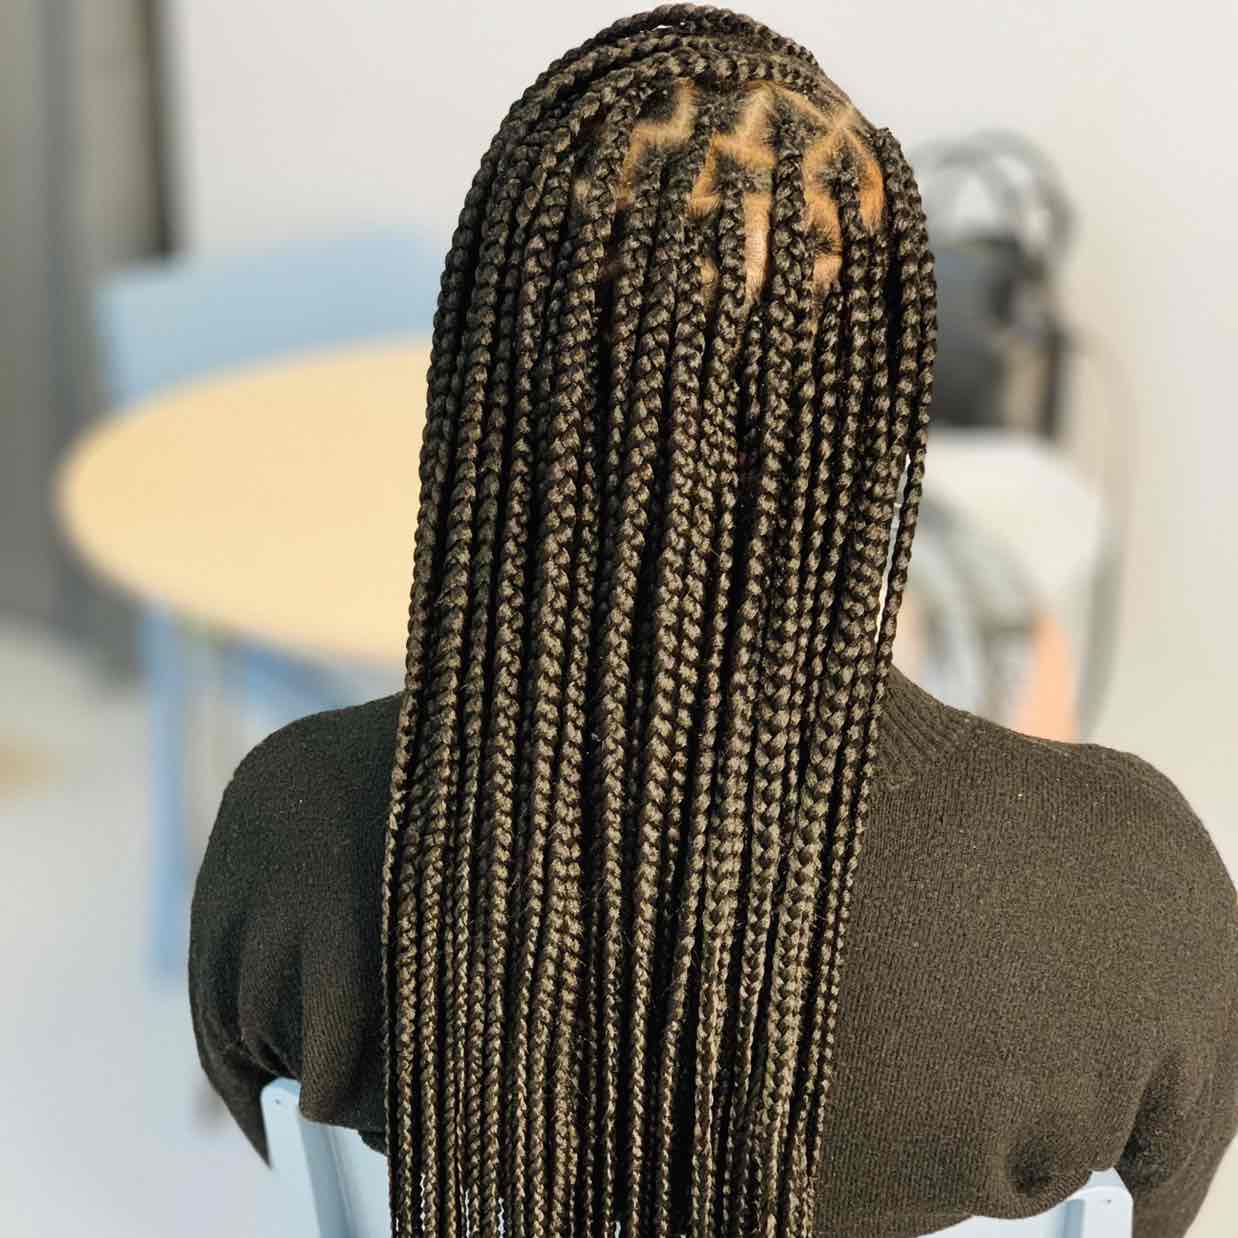 salon de coiffure afro tresse tresses box braids crochet braids vanilles tissages paris 75 77 78 91 92 93 94 95 LQEEYECF